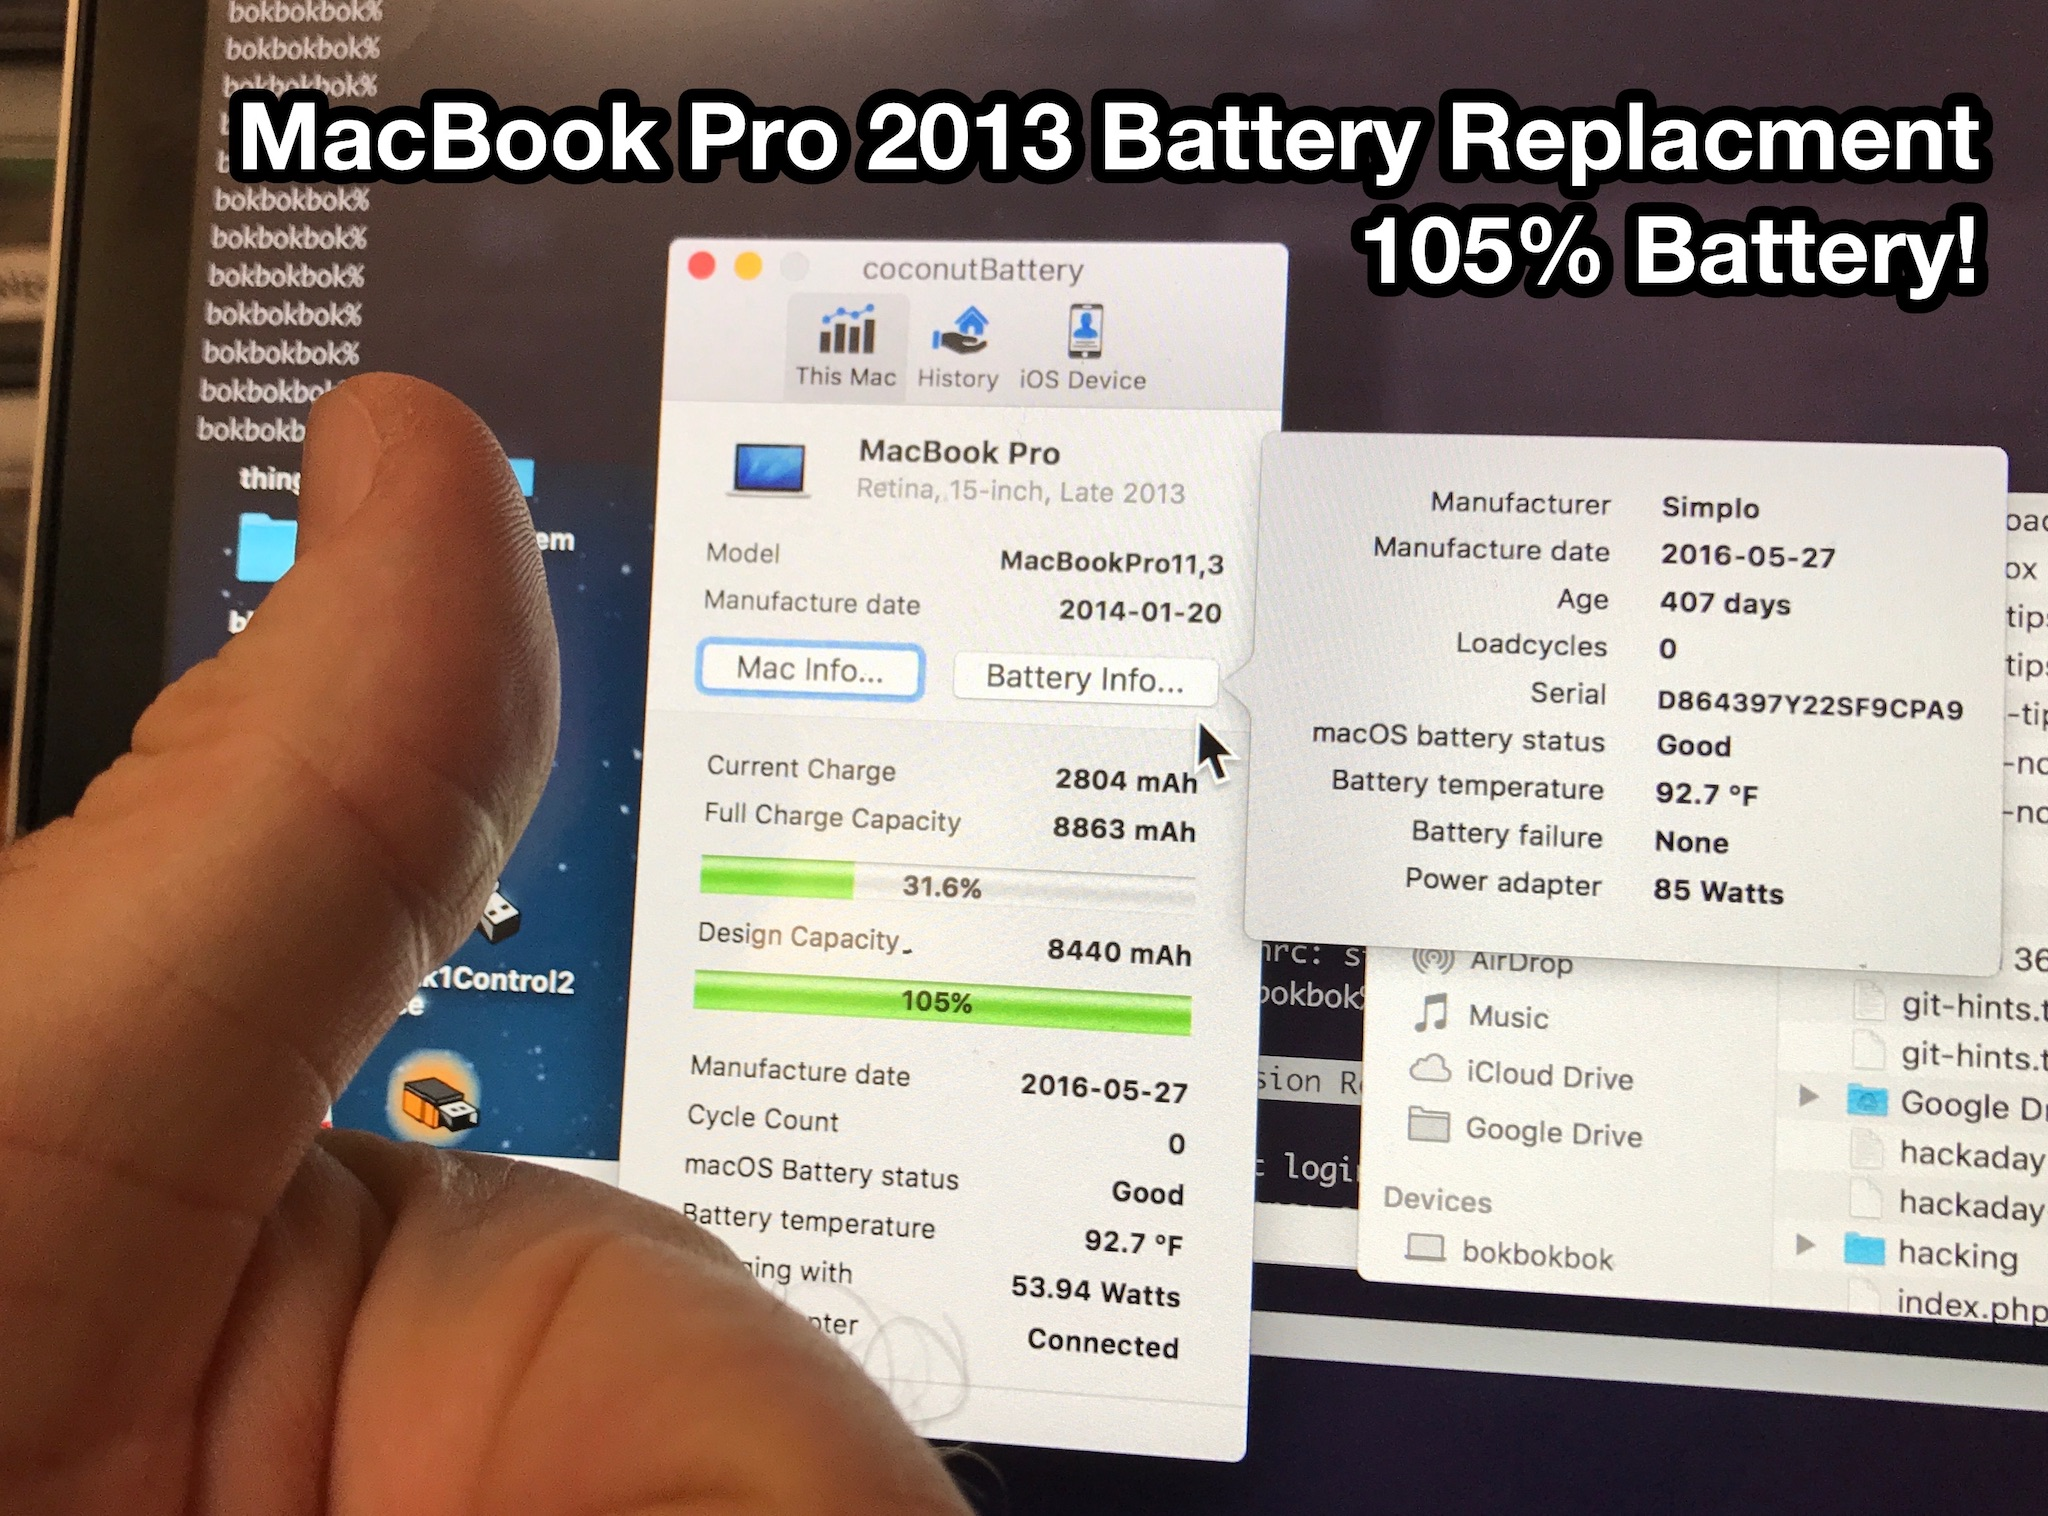 Replacing the battery in a Macbook Pro Retina (late 2013